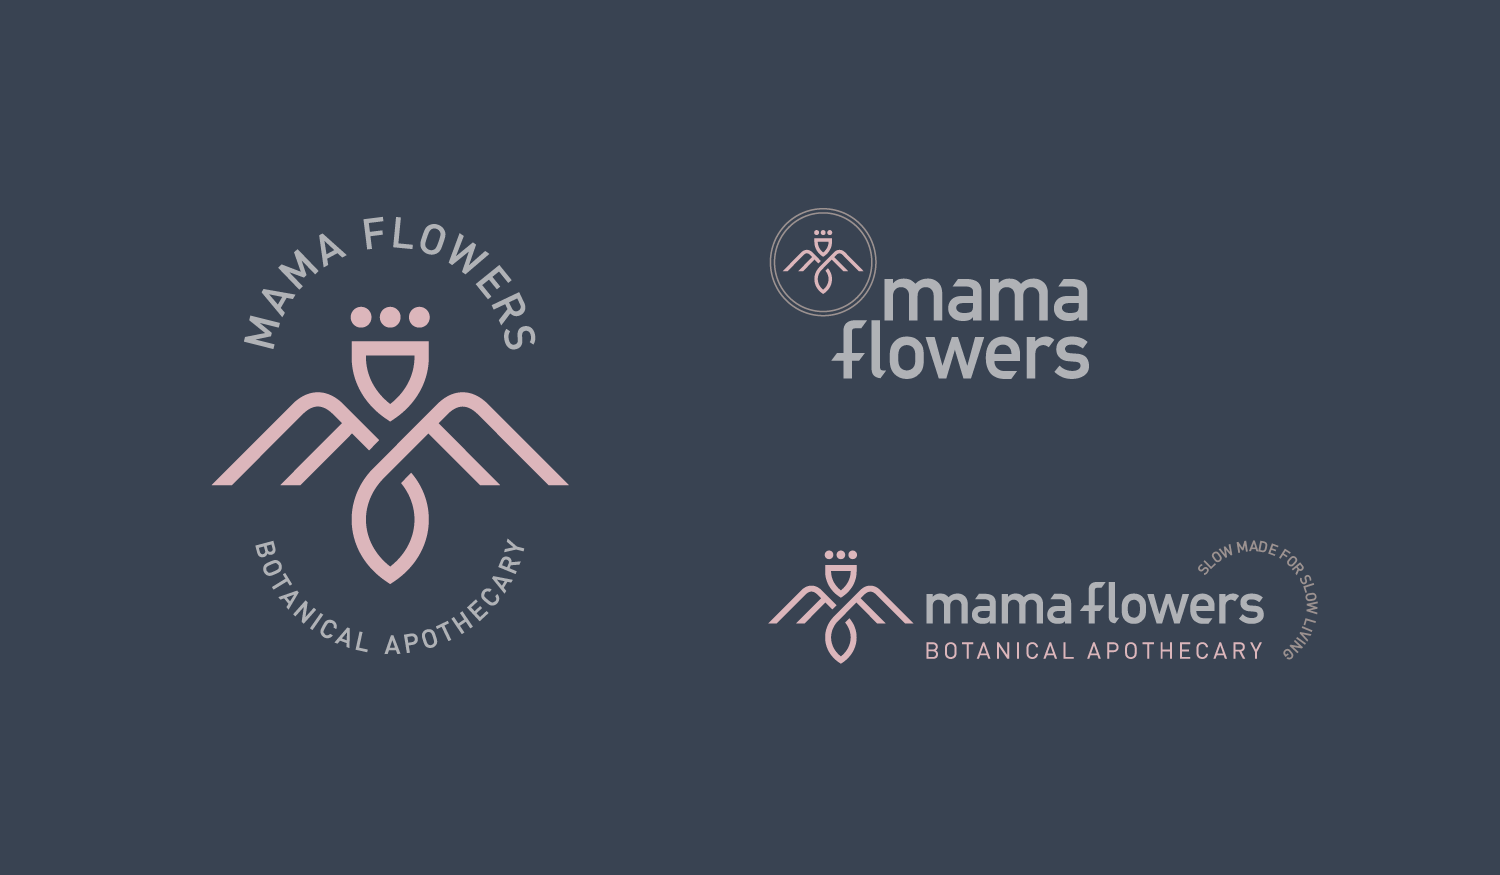 Mama Flowers visual identity logo lockups